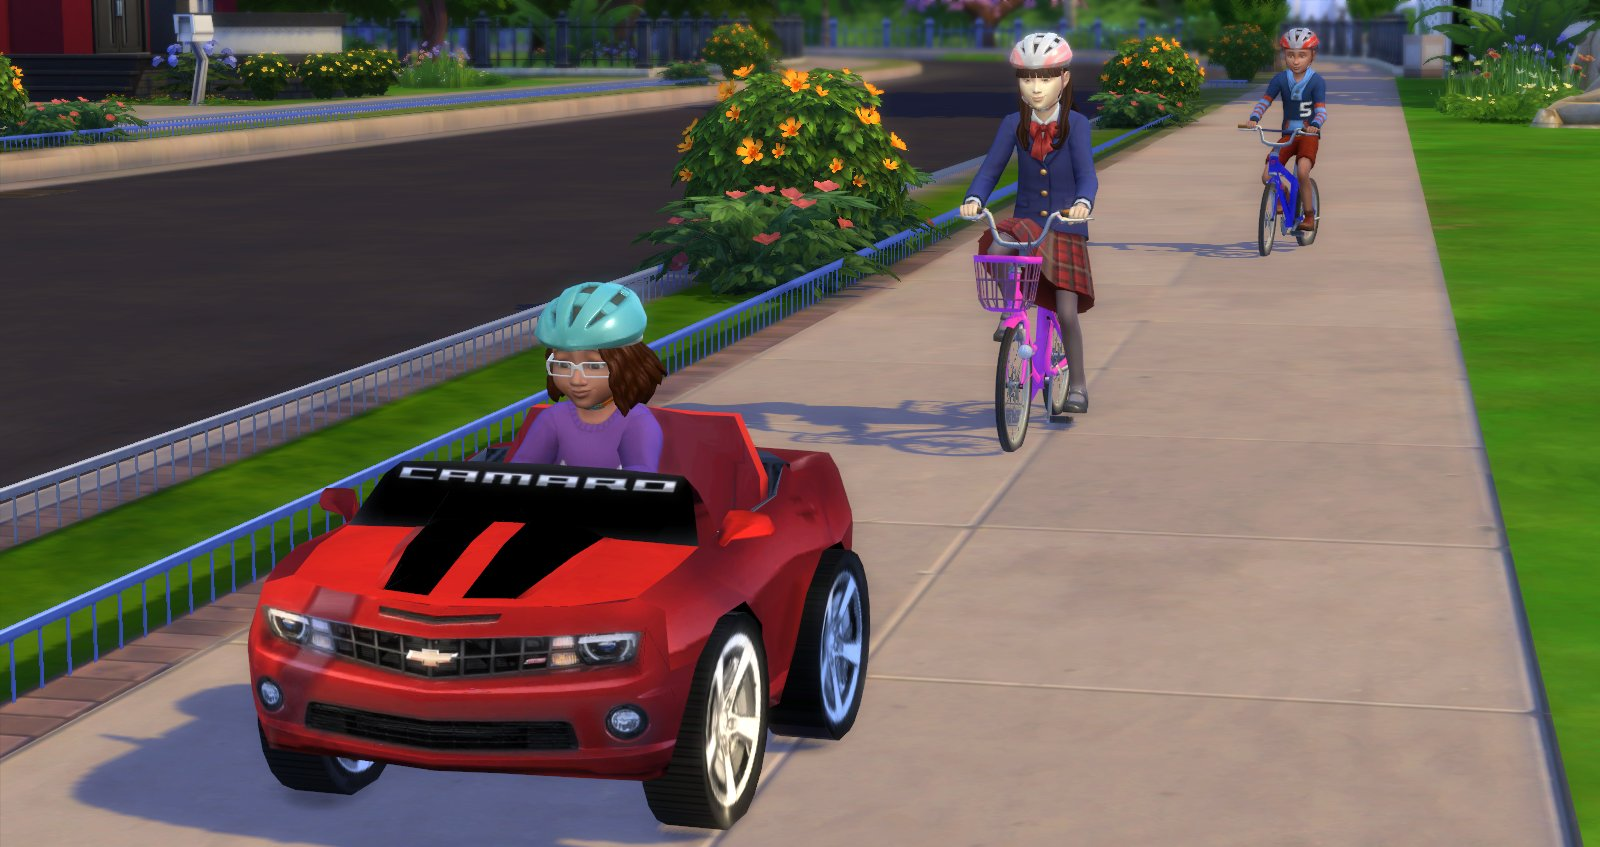 Toddler tricycle and car